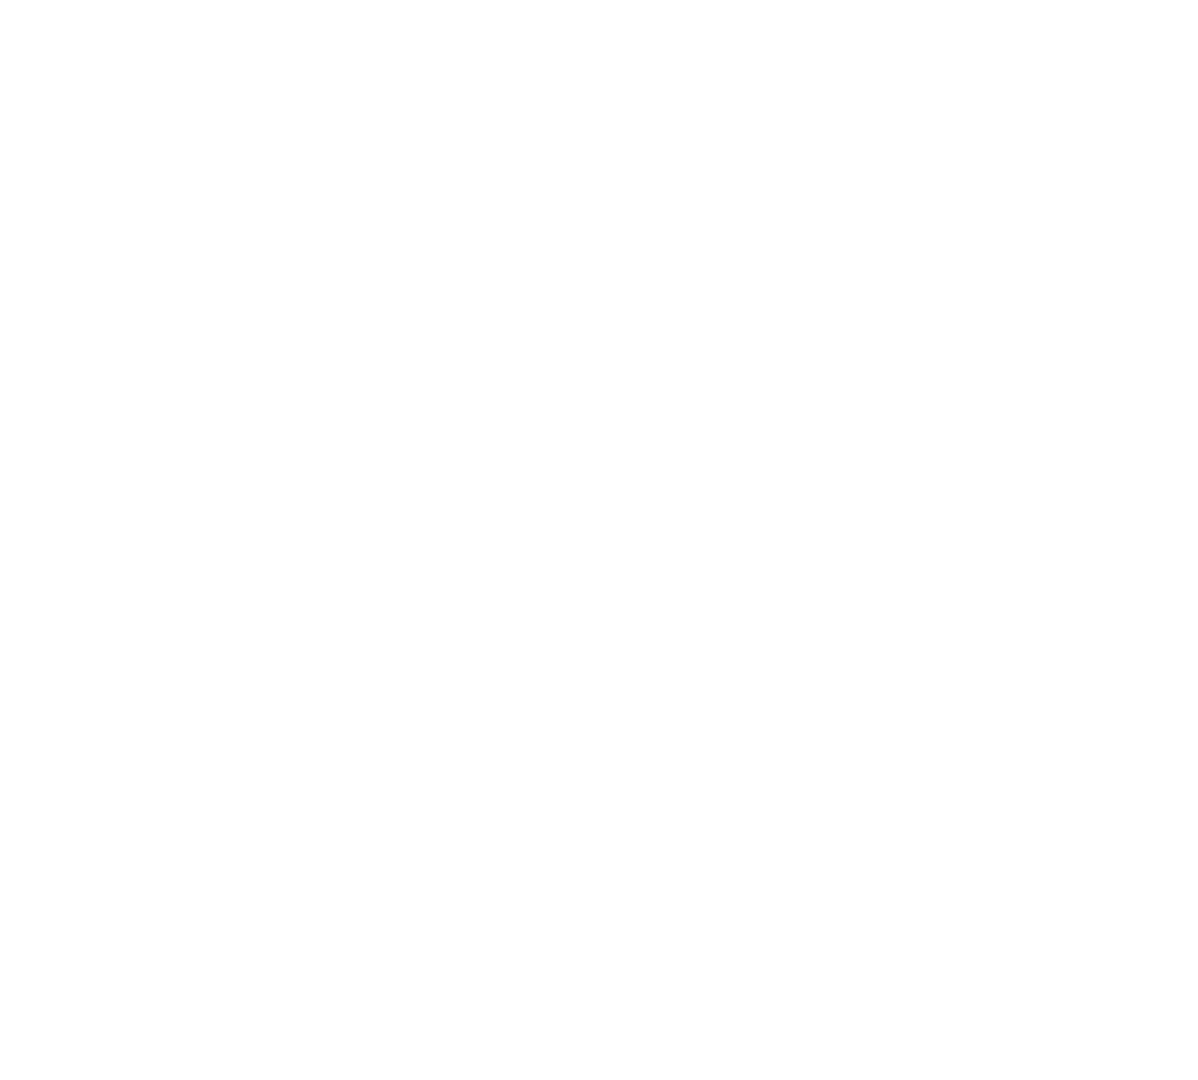 Lesley McConnell